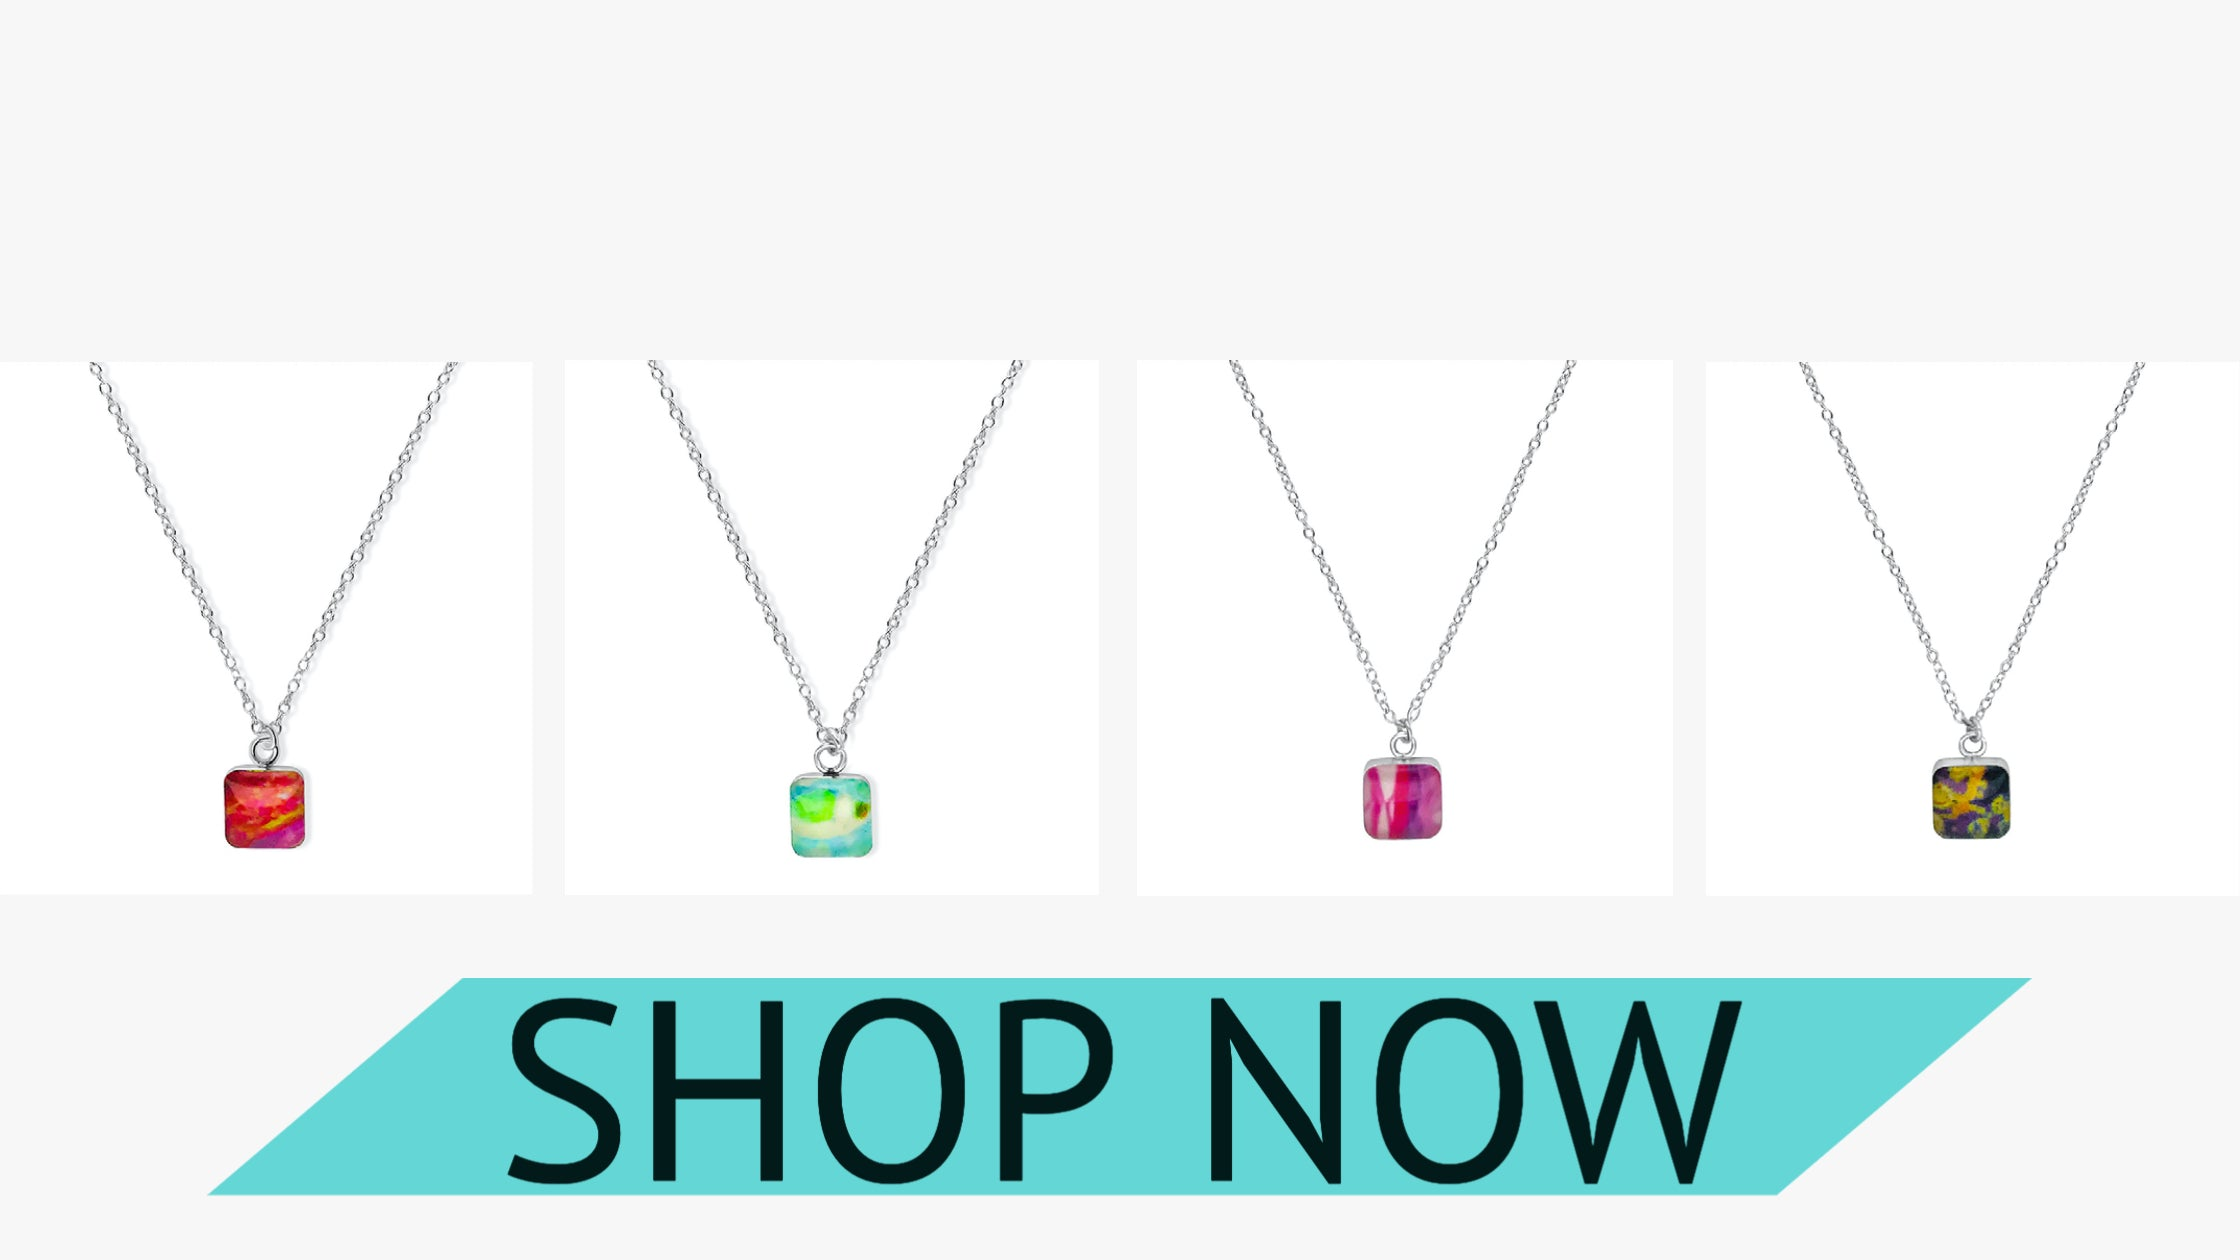 building blocks necklace for illness, disease and cancer awareness that gives back to research